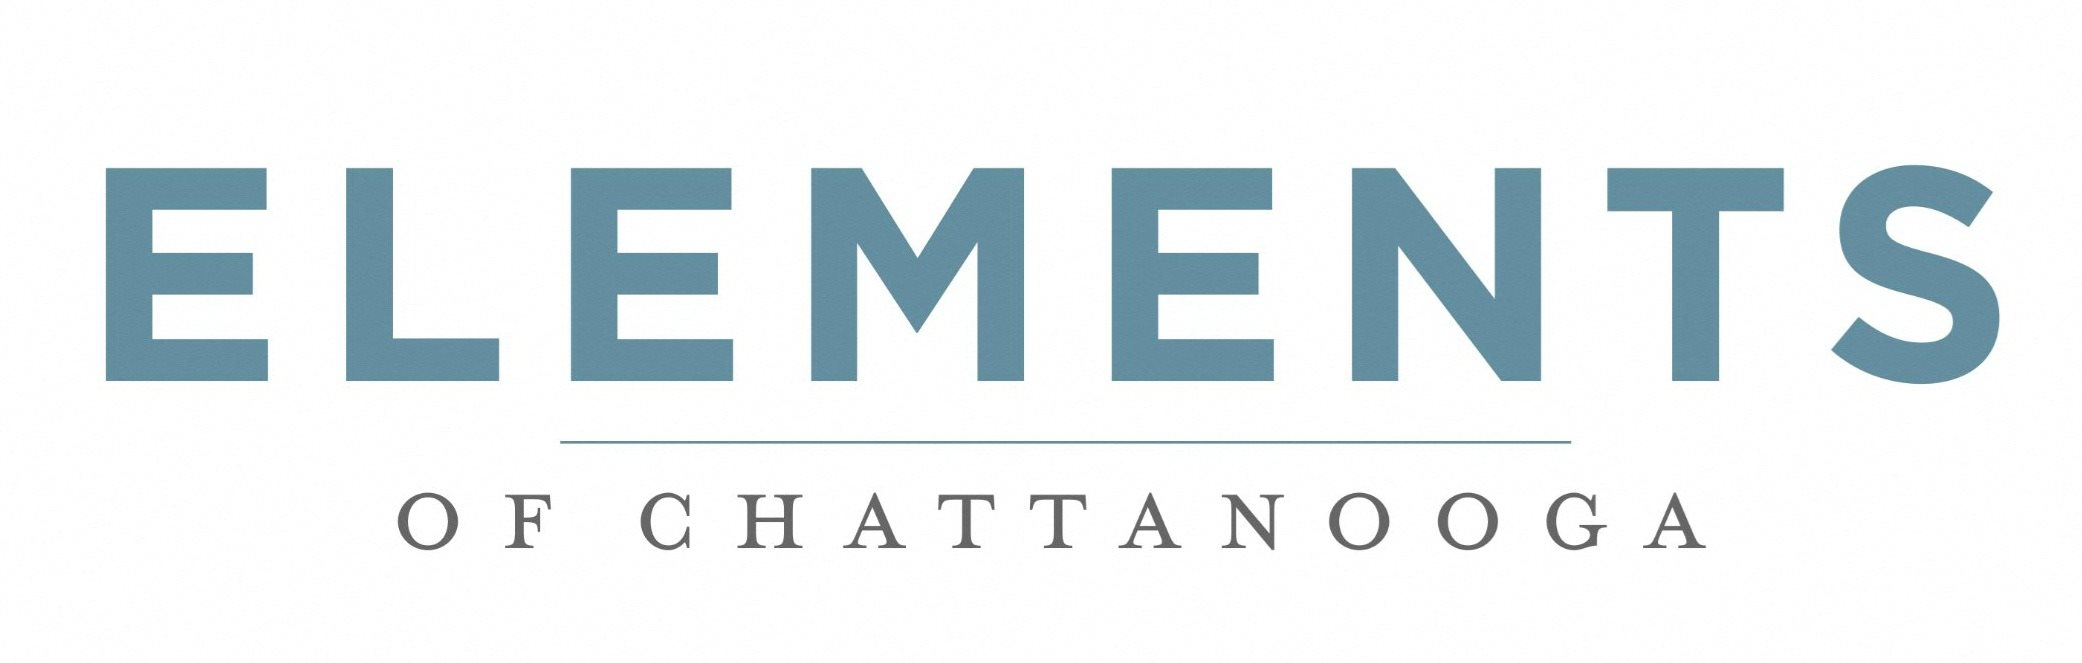 Chattanooga Property Logo 4